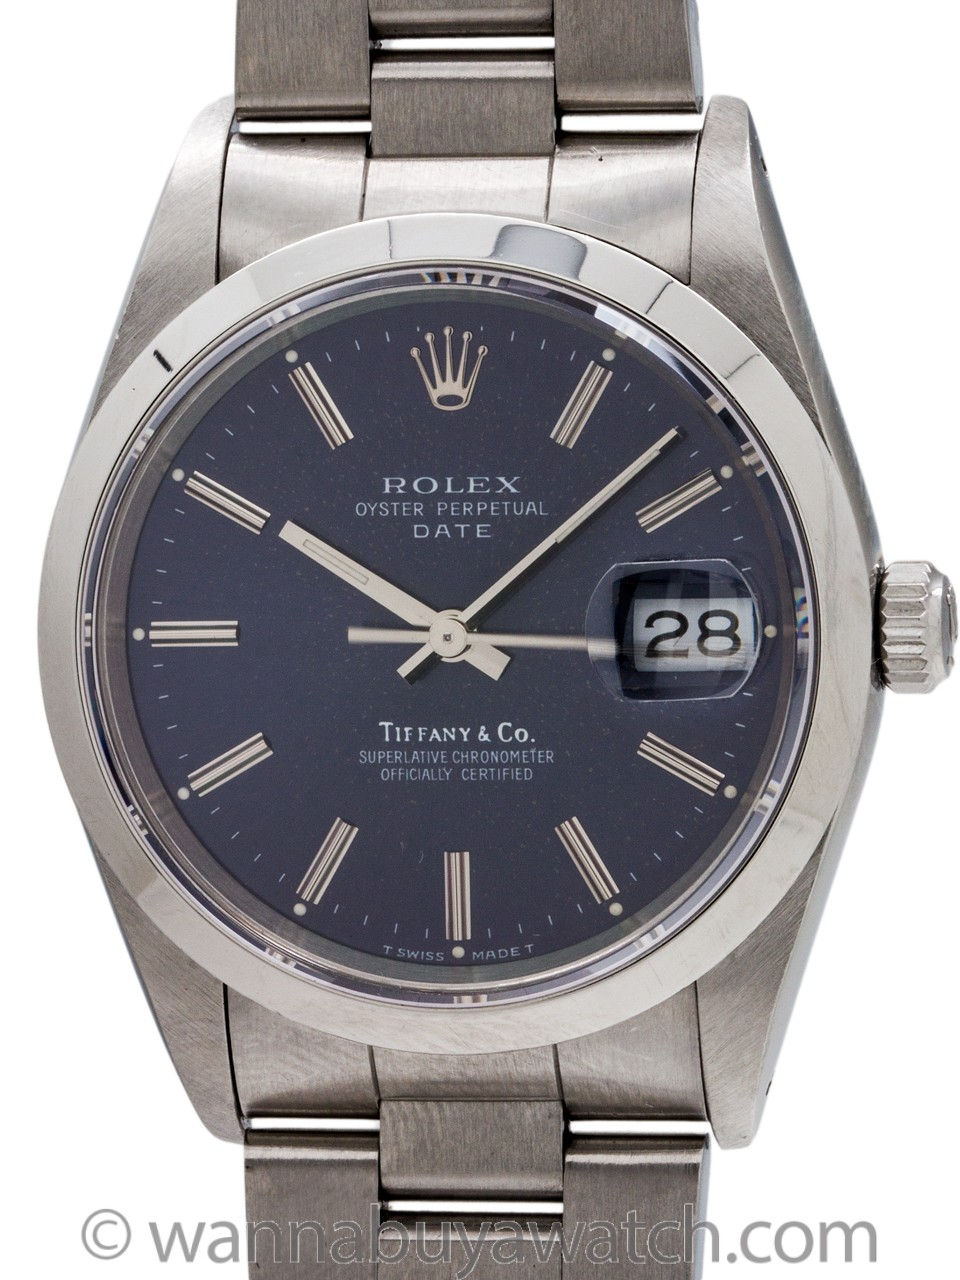 Rolex Oyster Perpetual Date ref 15200 Tiffany & Co circa 1990